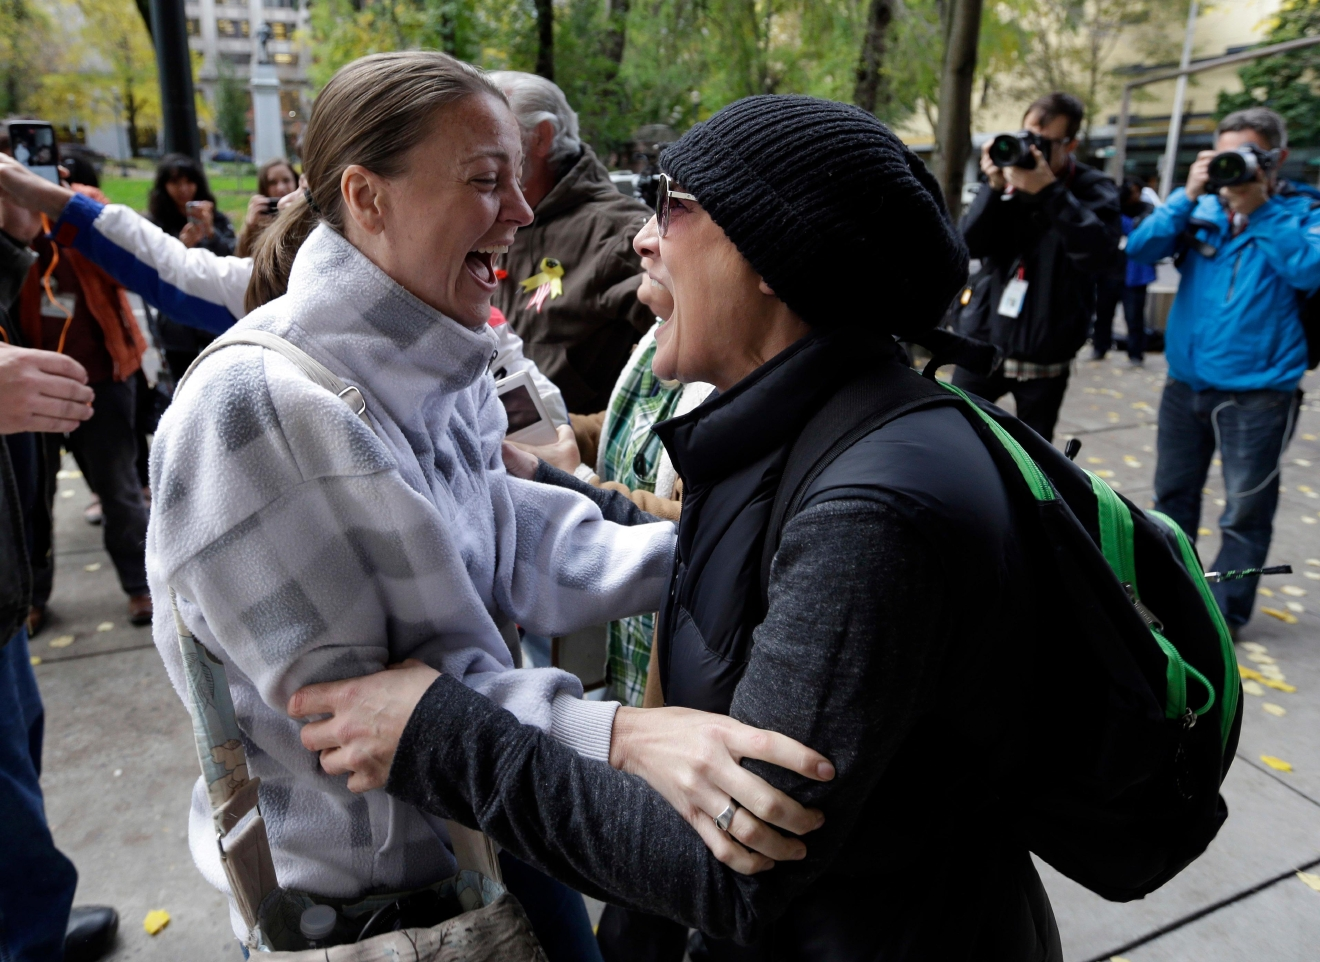 Supporters celebrate after hearing a verdict outside federal court in Portland, Ore., Thursday, Oct. 27, 2016. A jury exonerated brothers Ammon and Ryan Bundy and five others of conspiring to impede federal workers from their jobs at the Malheur National Wildlife Refuge. (AP Photo/Don Ryan)